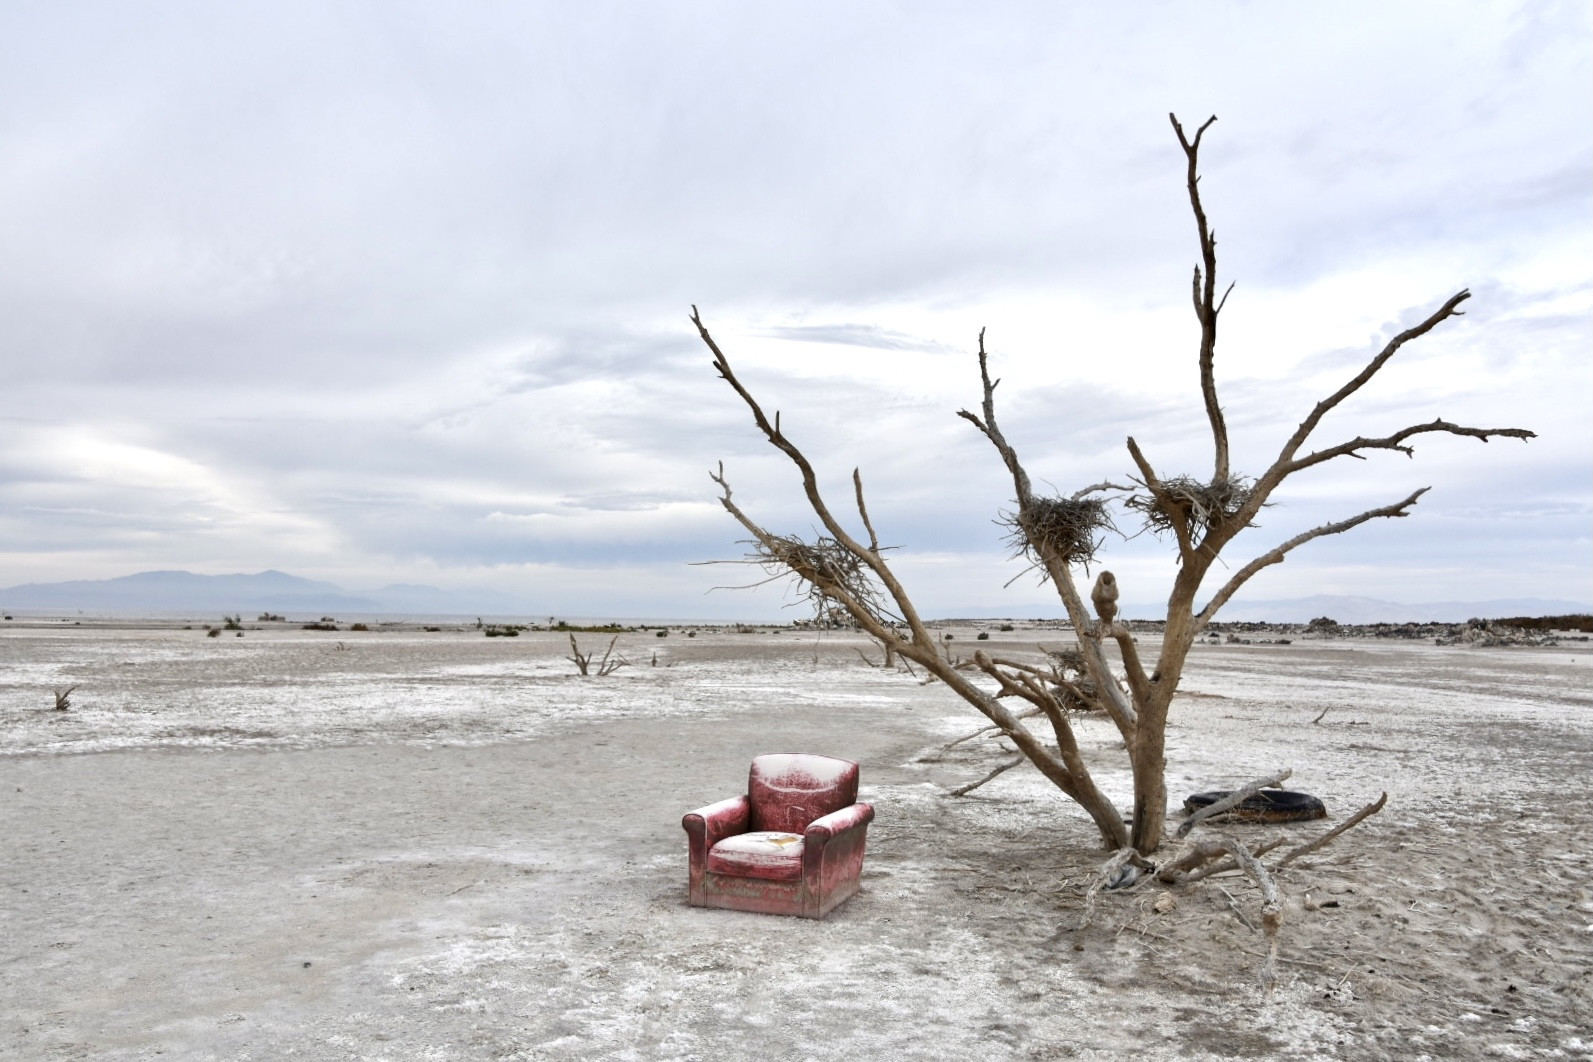 Road: Soundscapes, Mud Volcanoes and Hammertown